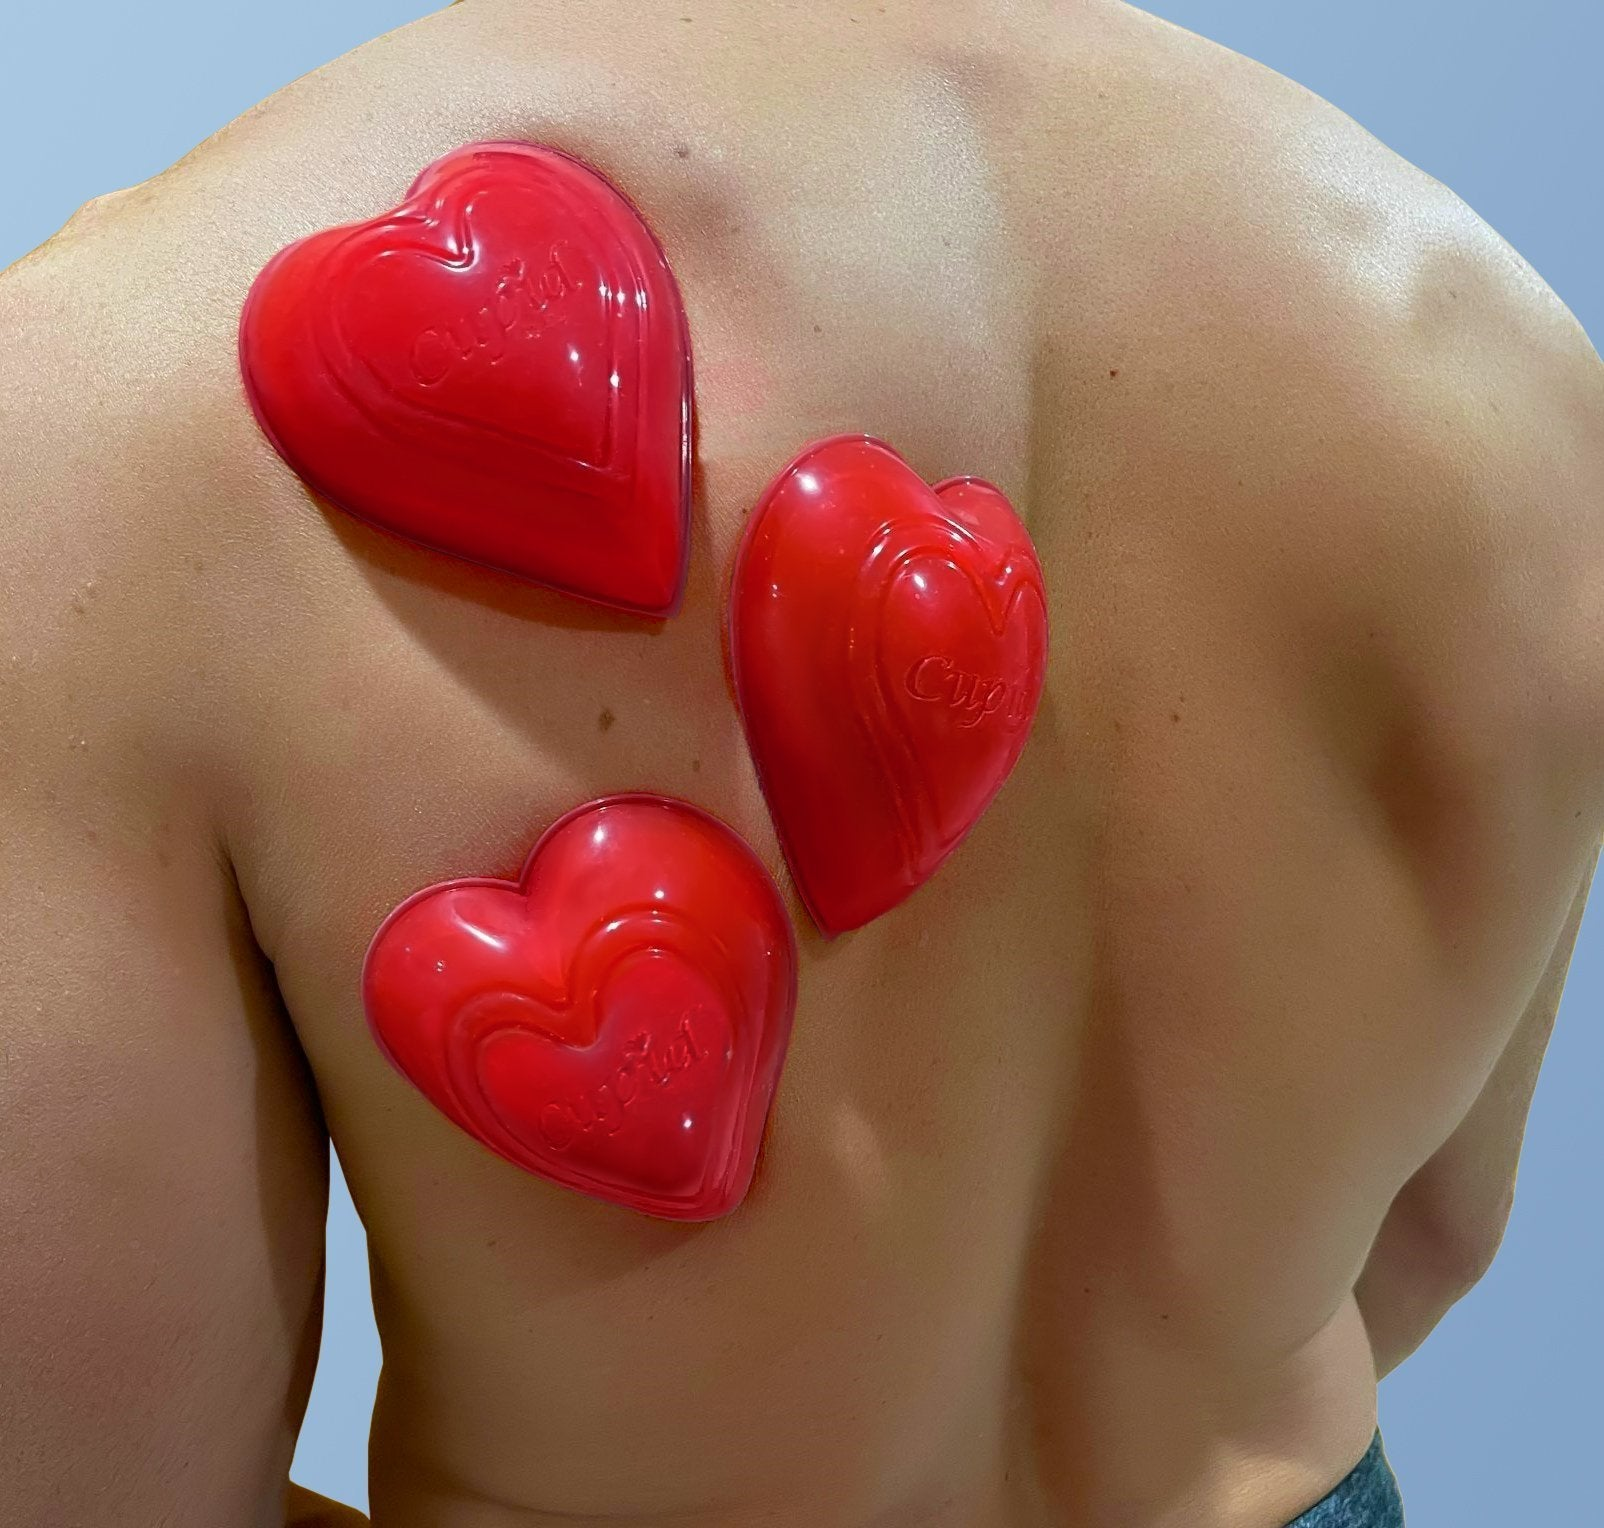 Cupid Heart-shaped Cupping Cups